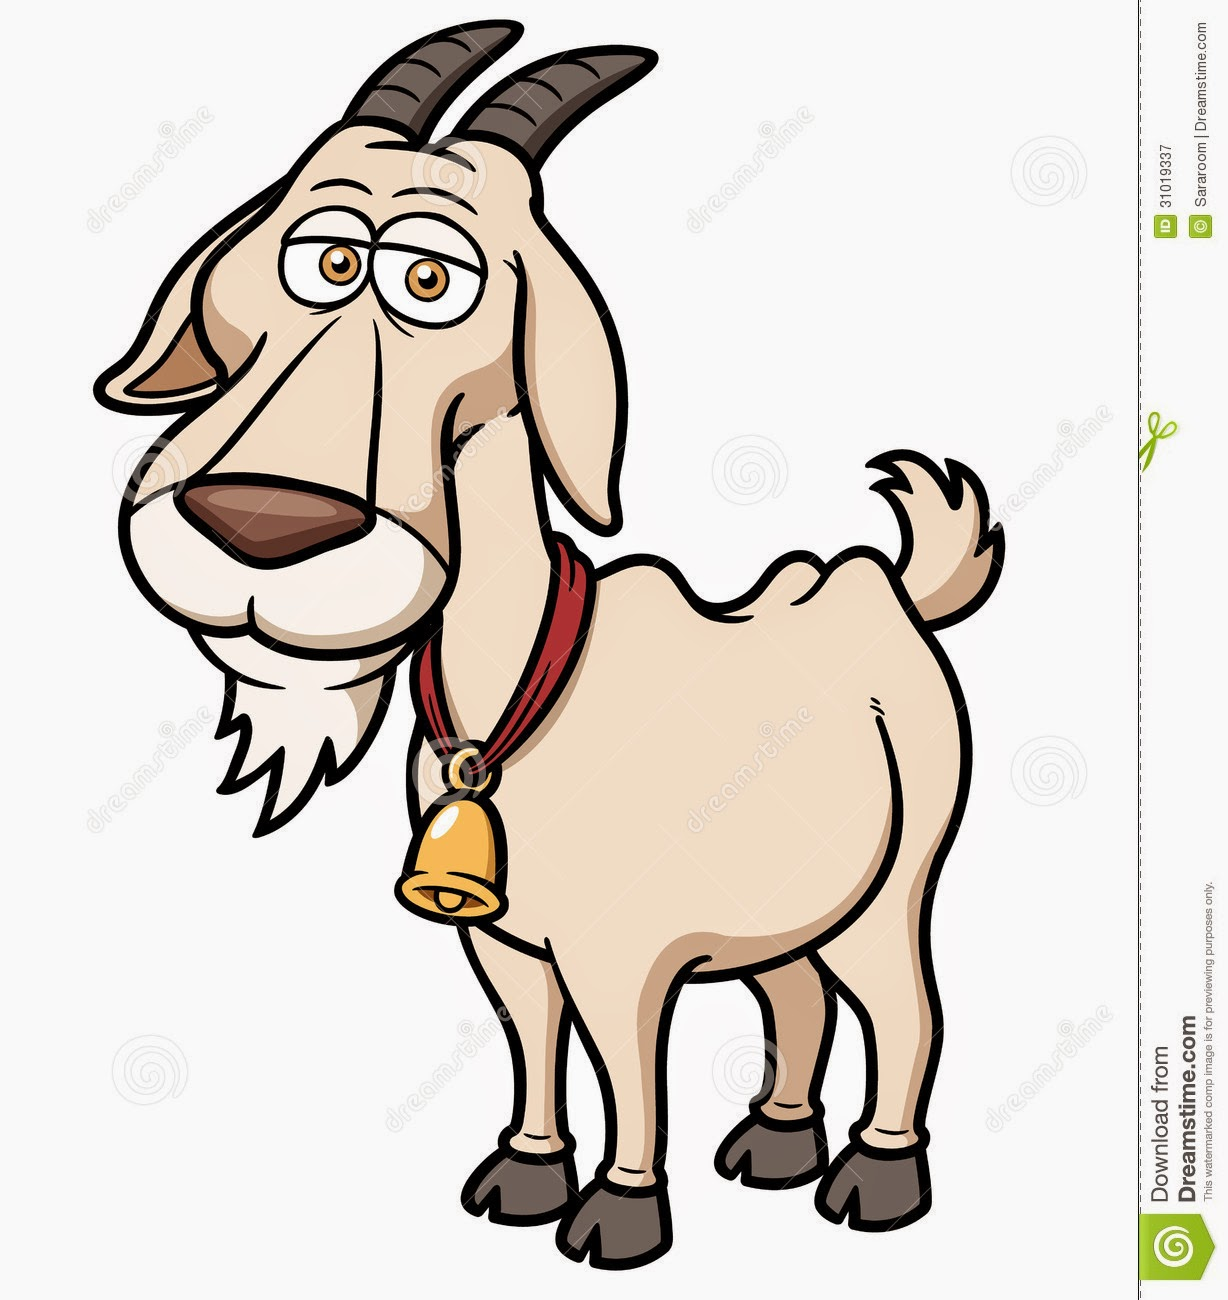 Cute Goat Clipart The Peeled Onion March 2015